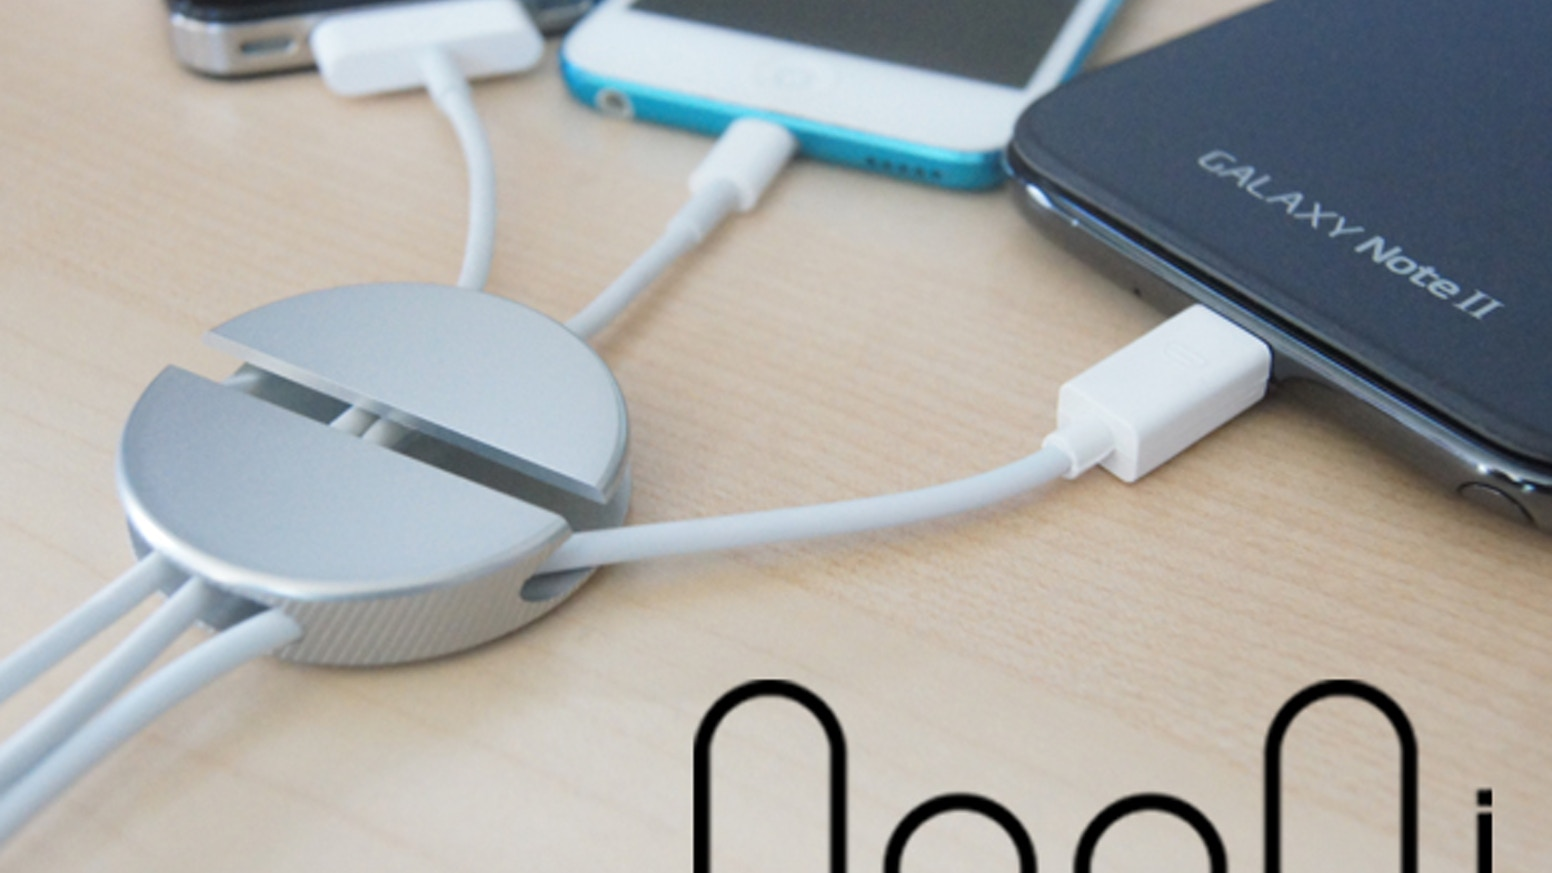 QooQi is a simple easy to use aluminum cable organizer